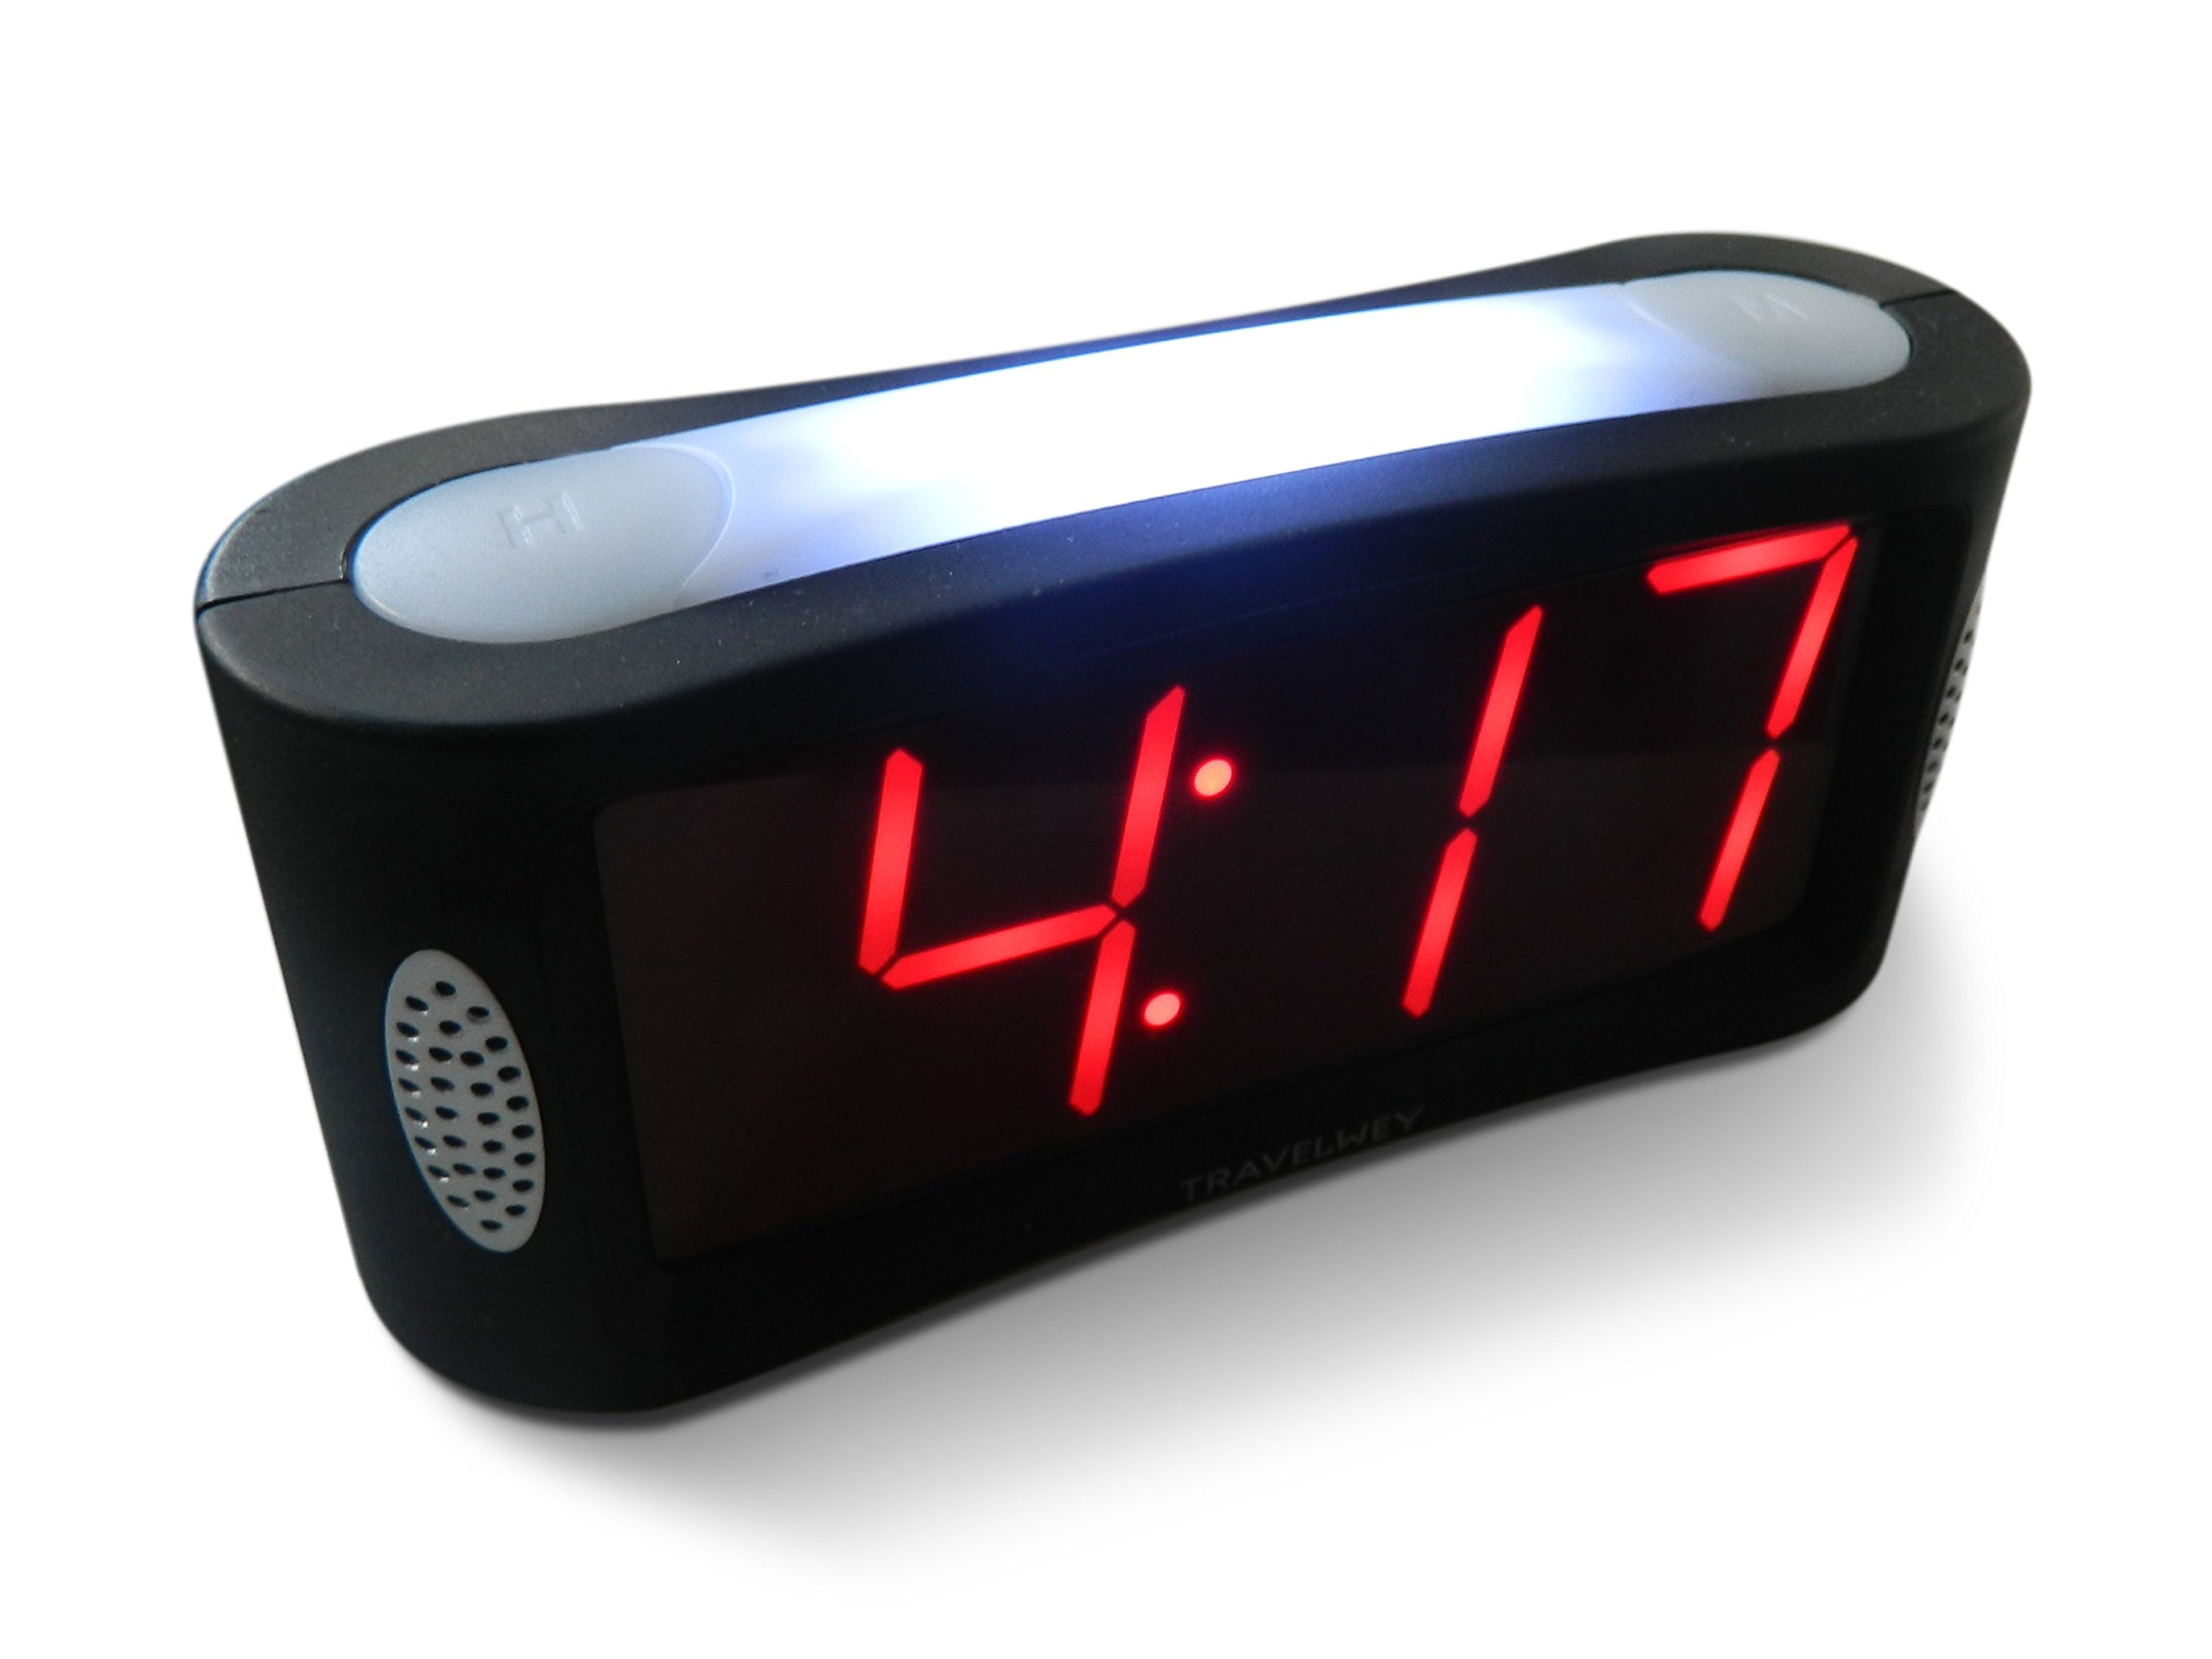 Travelwey Home LED Clock-Outlet Powered, No Frills Simple Operation, Large Night Light, Loud Alarm, Snooze, Full Range Brightness Dimmer, Big Red Digit D Display, Black by Travelwey